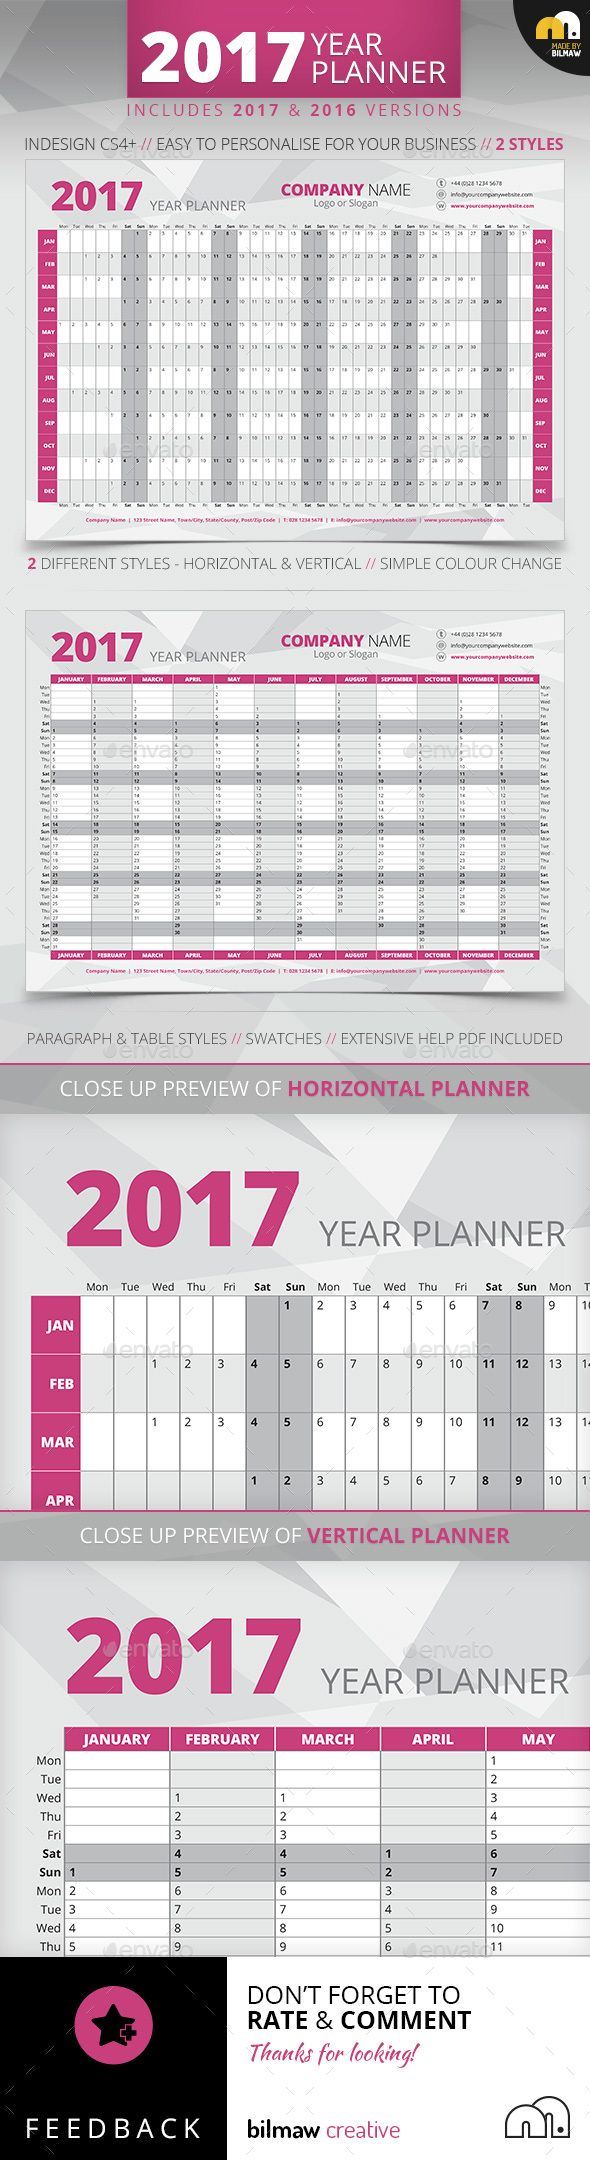 Year Wall Planner | 2017 YEAR WALL PLANNER 2 Different Layouts included – Horizontal & Vertical | Printable template.